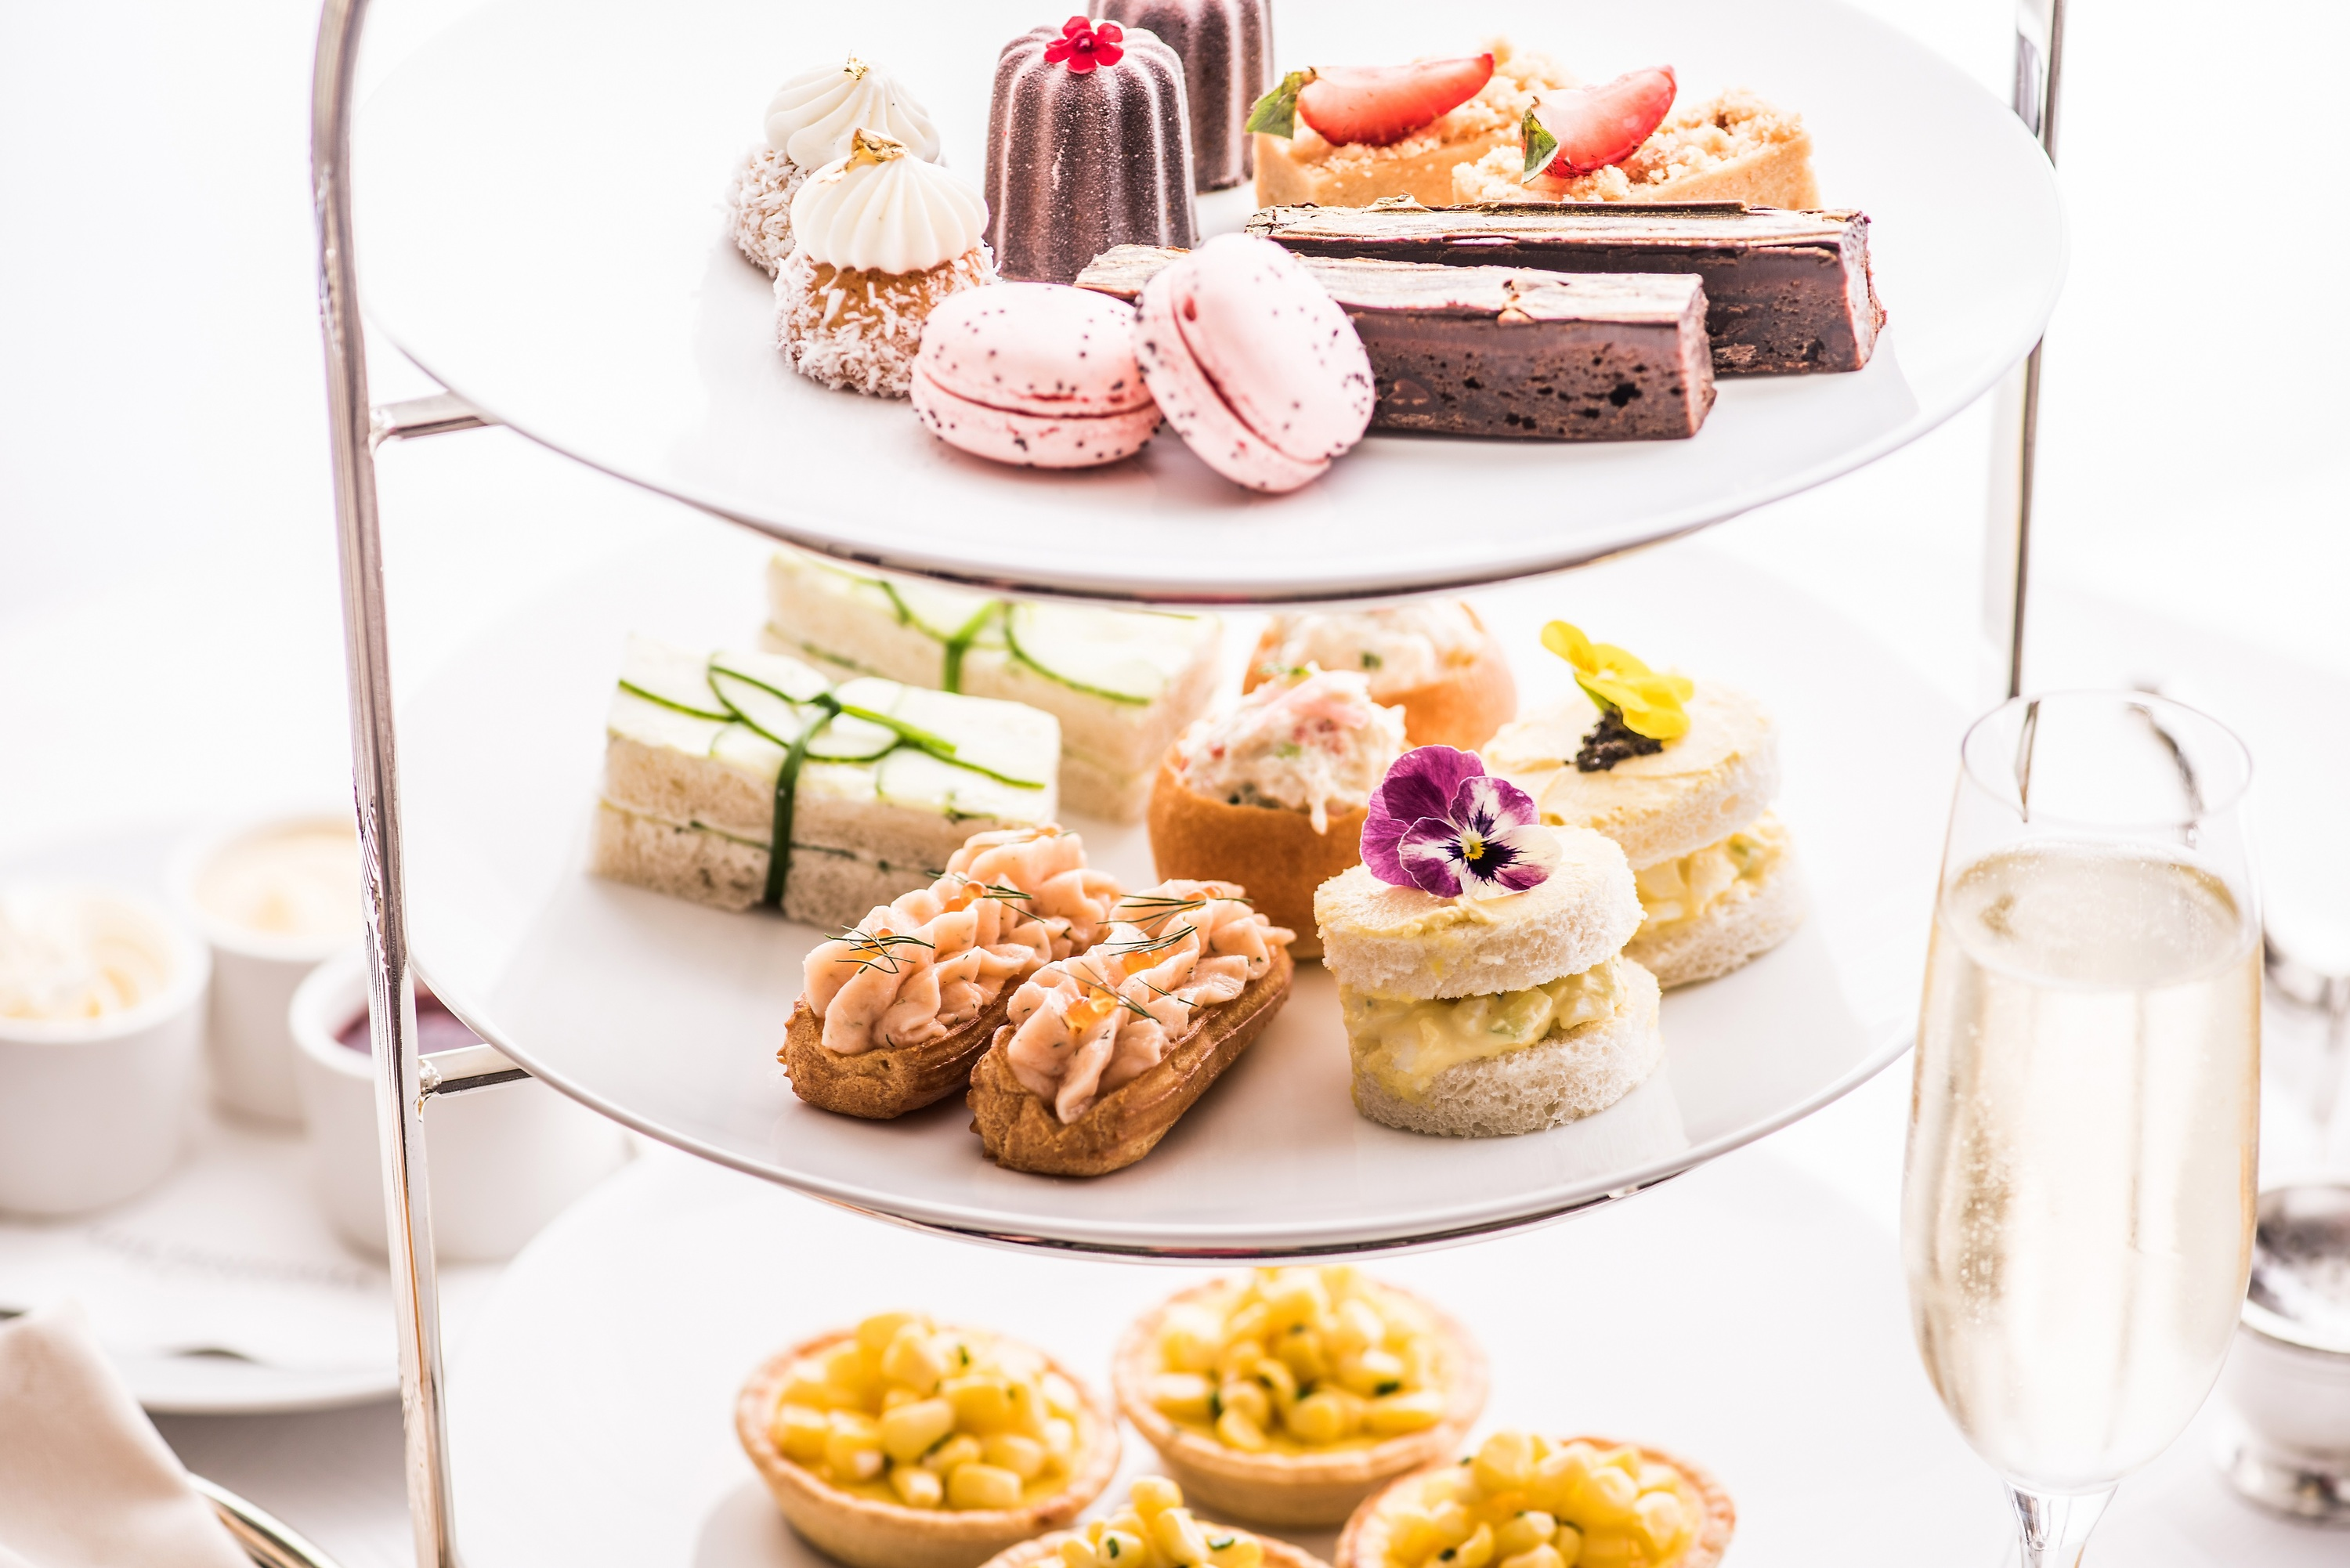 Best spots for high tea in Chicago